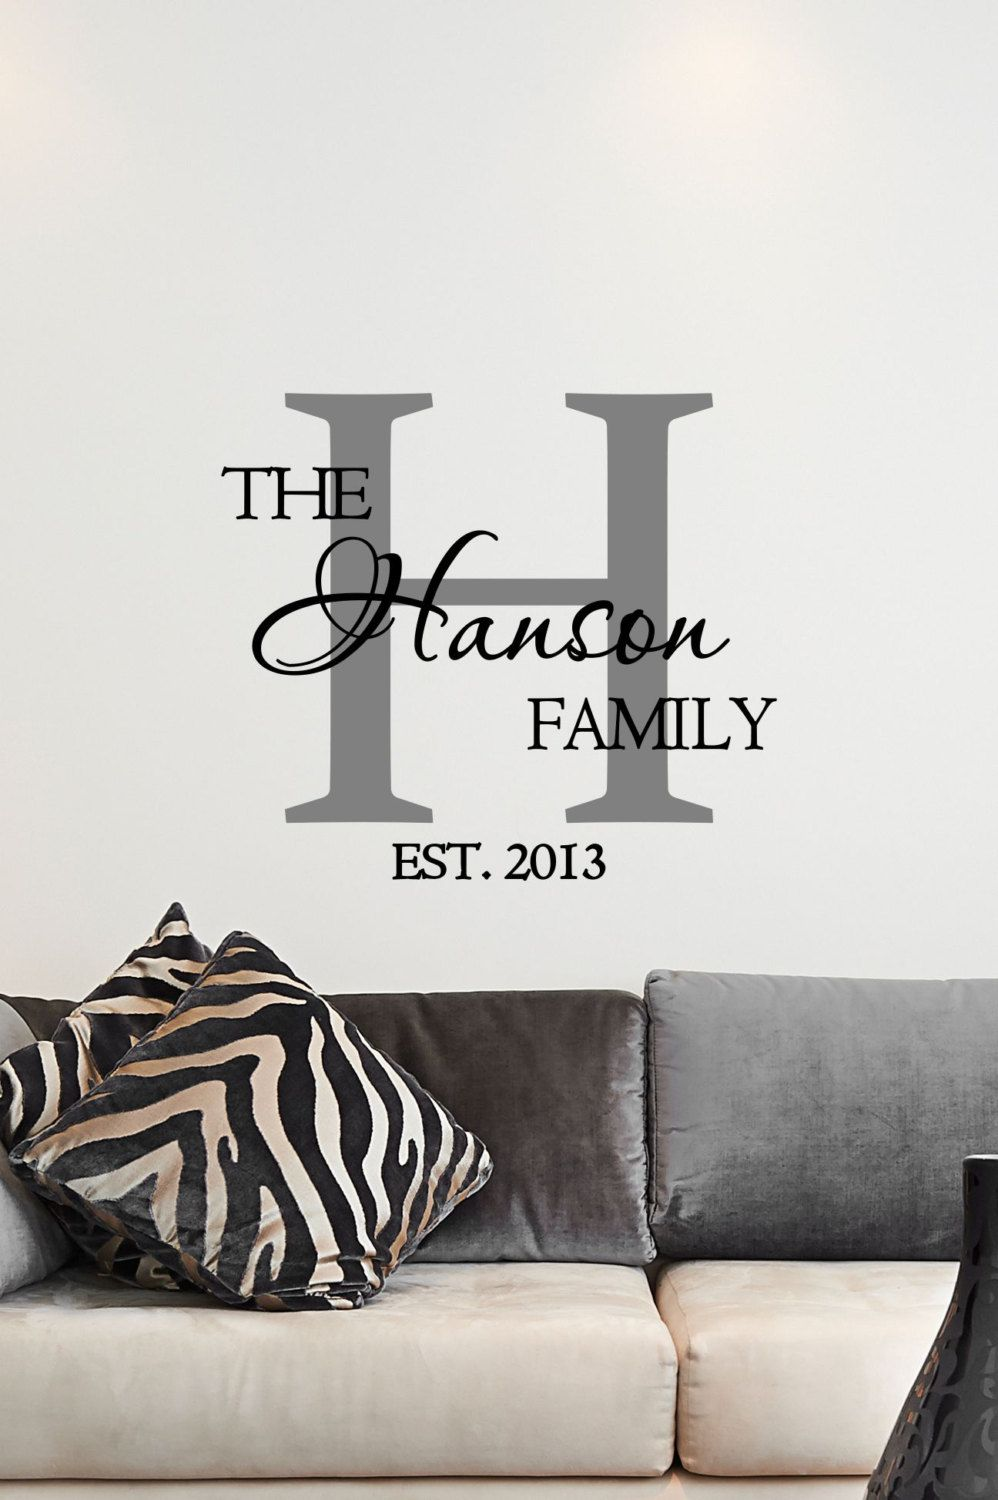 Personalized Name Wall Art custom family name & monogram vinyl decal - monogram vinyl wall